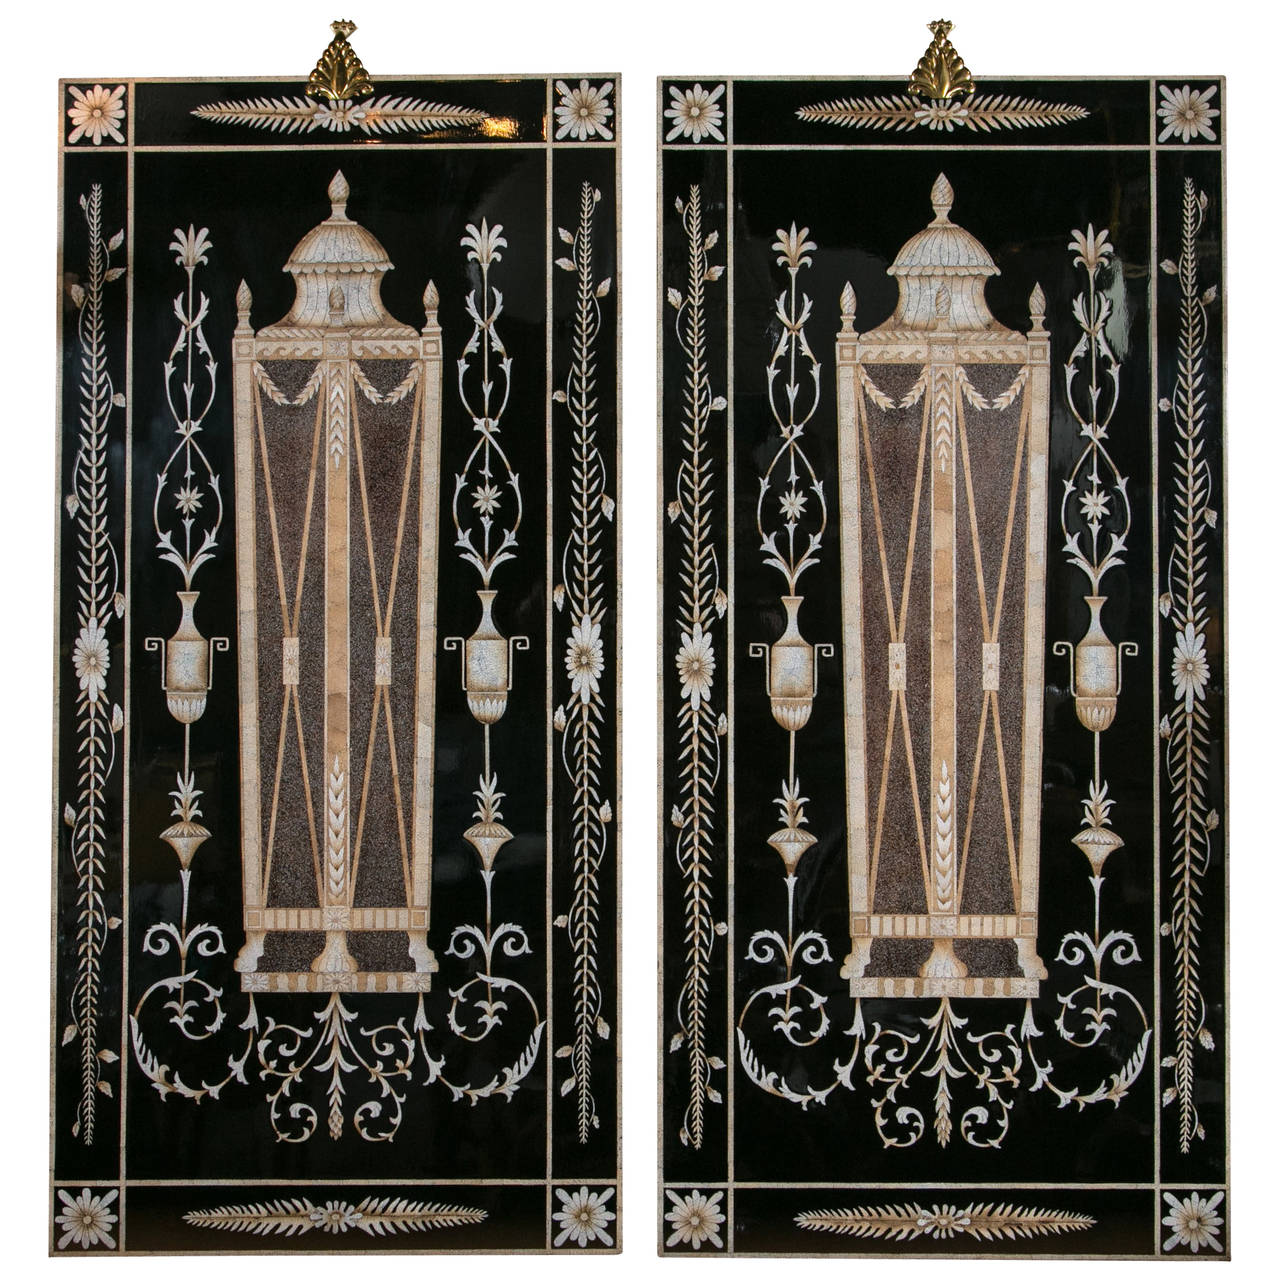 Pair Of Eggshell Lacquer Wall Panels By Maitland Smith At